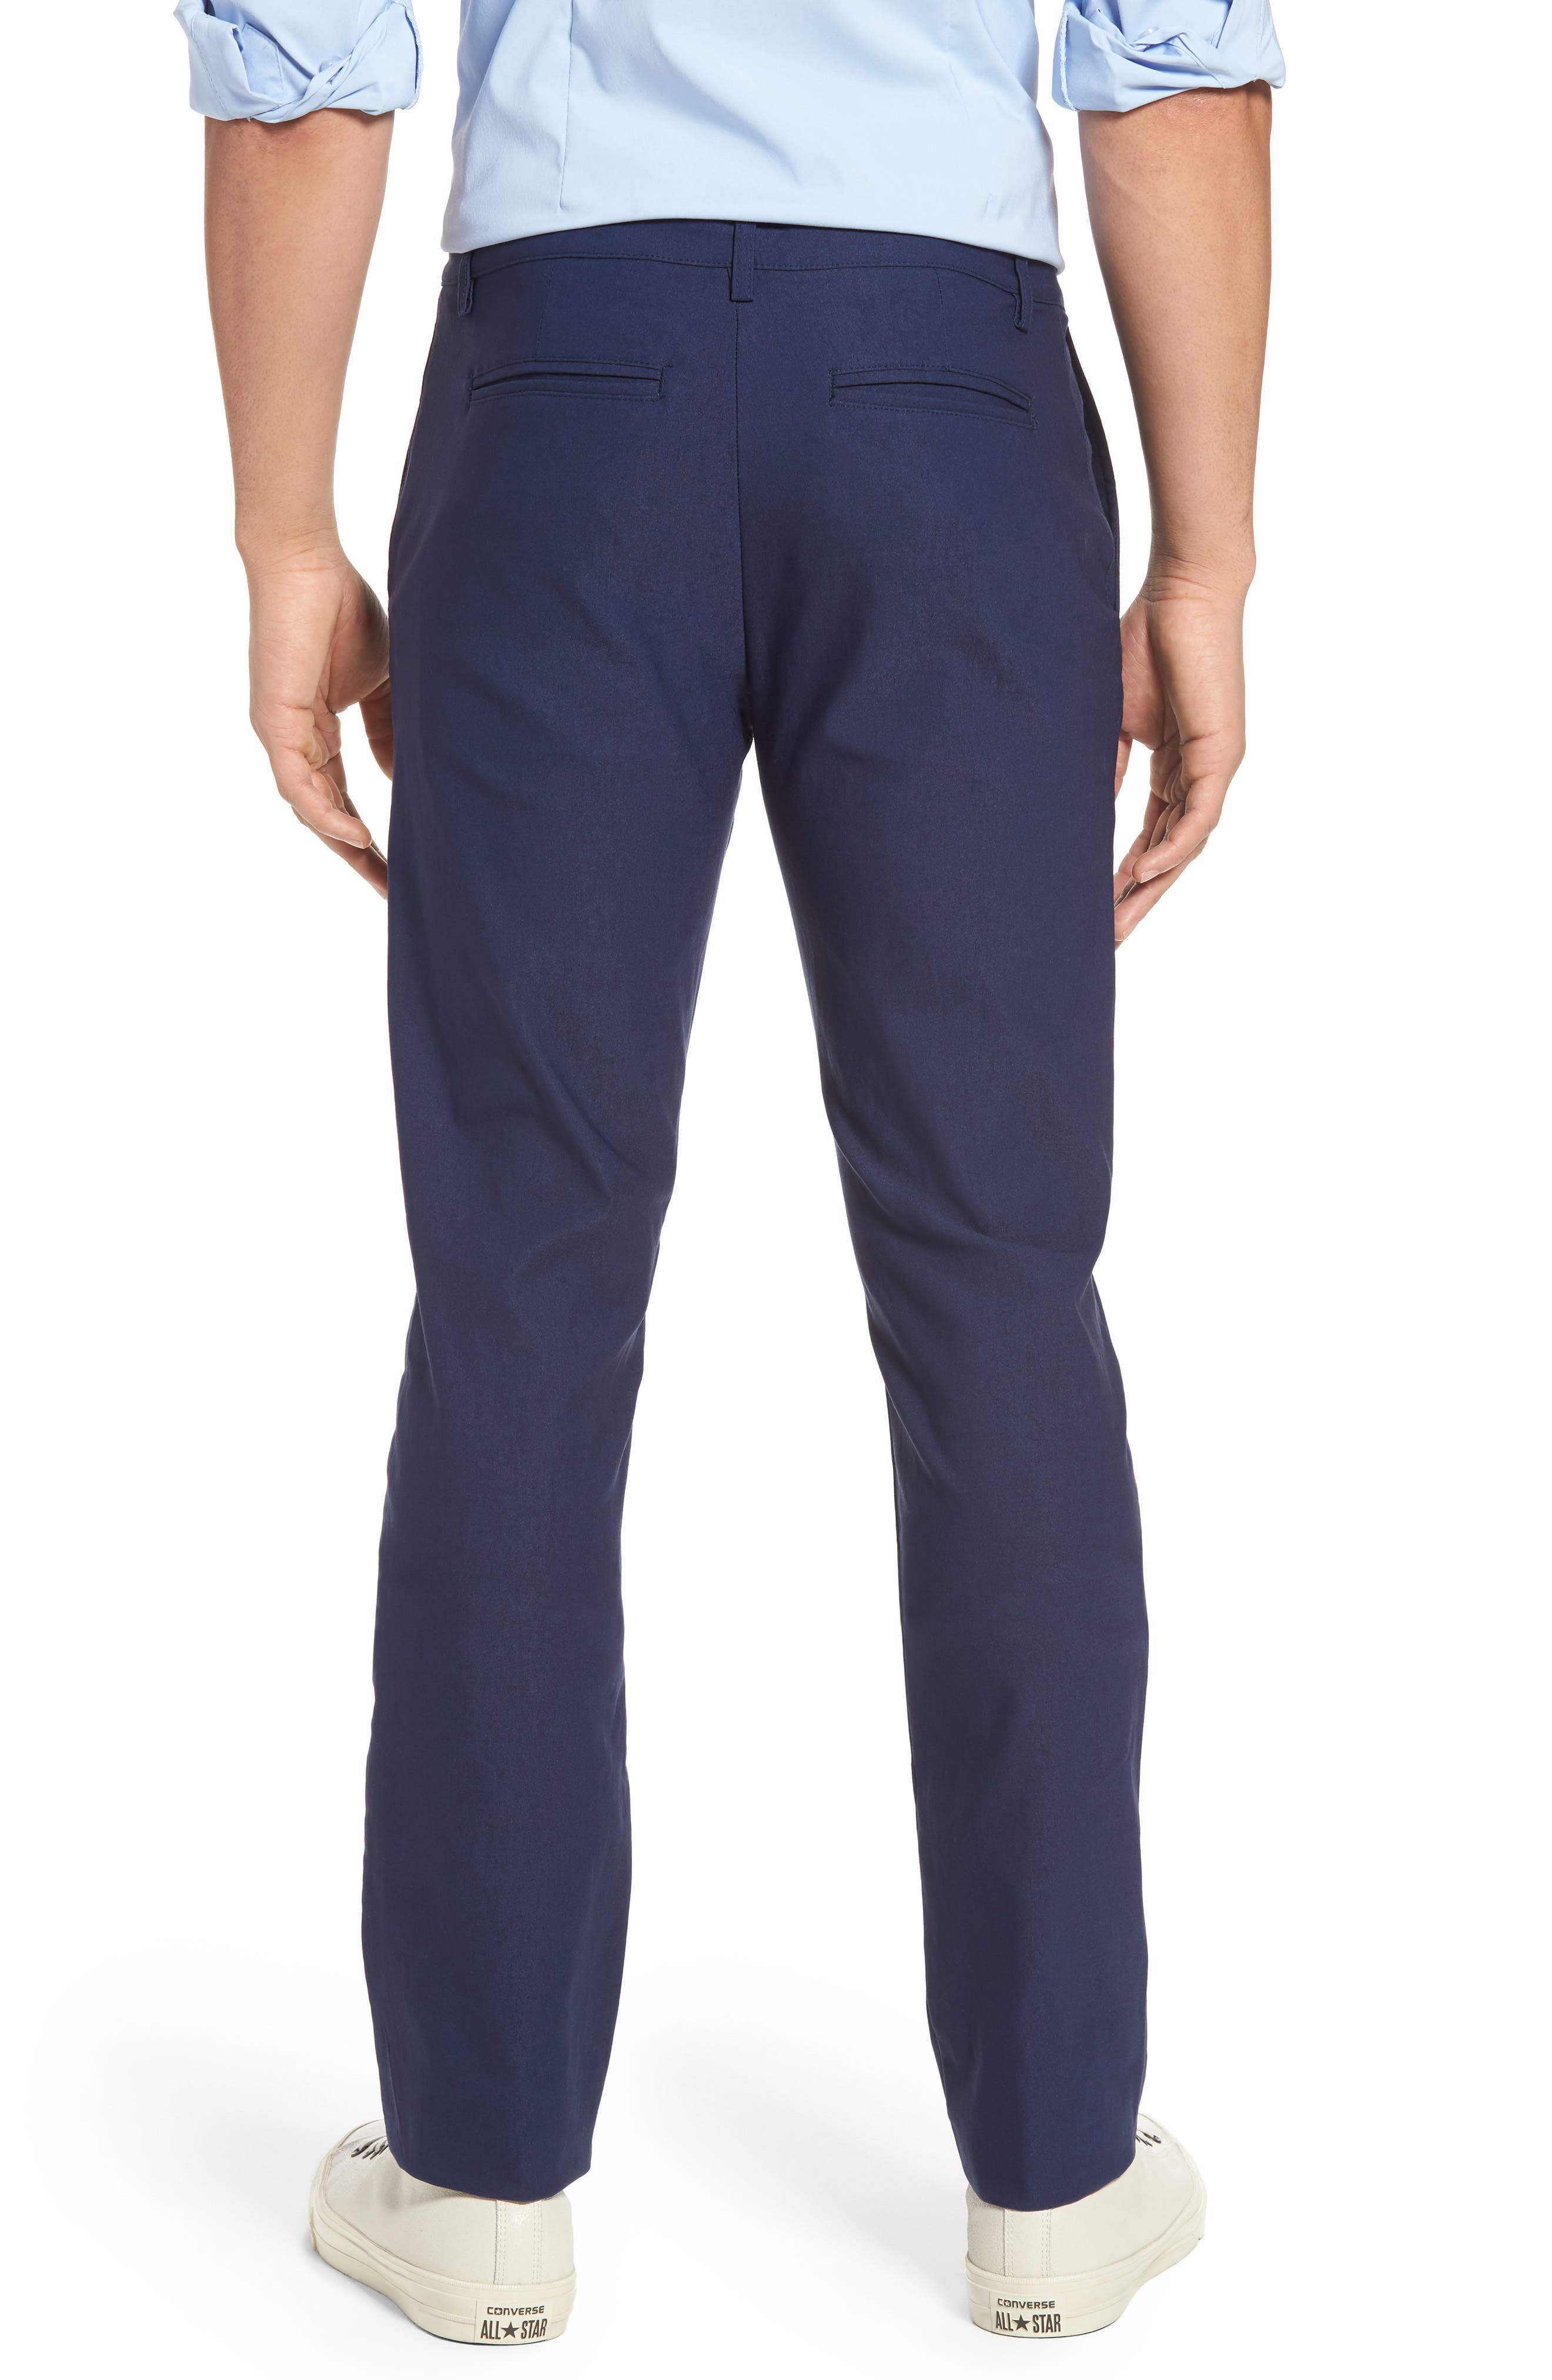 President Trim Fit Performance Chinos,                             Alternate thumbnail 2, color,                             400